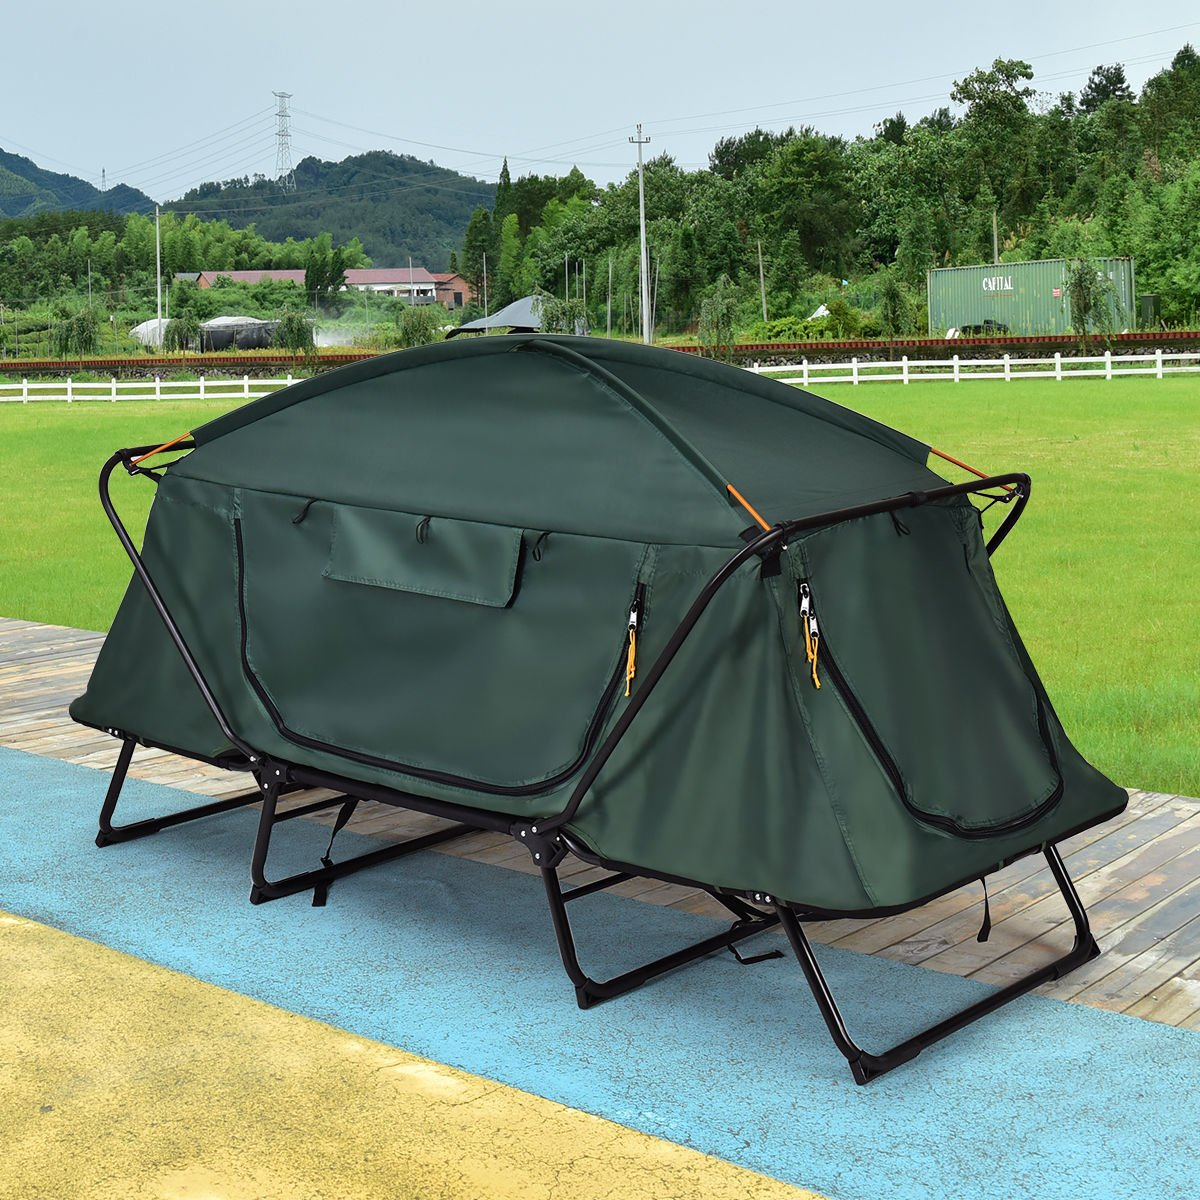 Tangkula Tent Cot Folding Waterproof 1 Person Hiking Camping Tent with Carry Bag by Tangkula (Image #1)